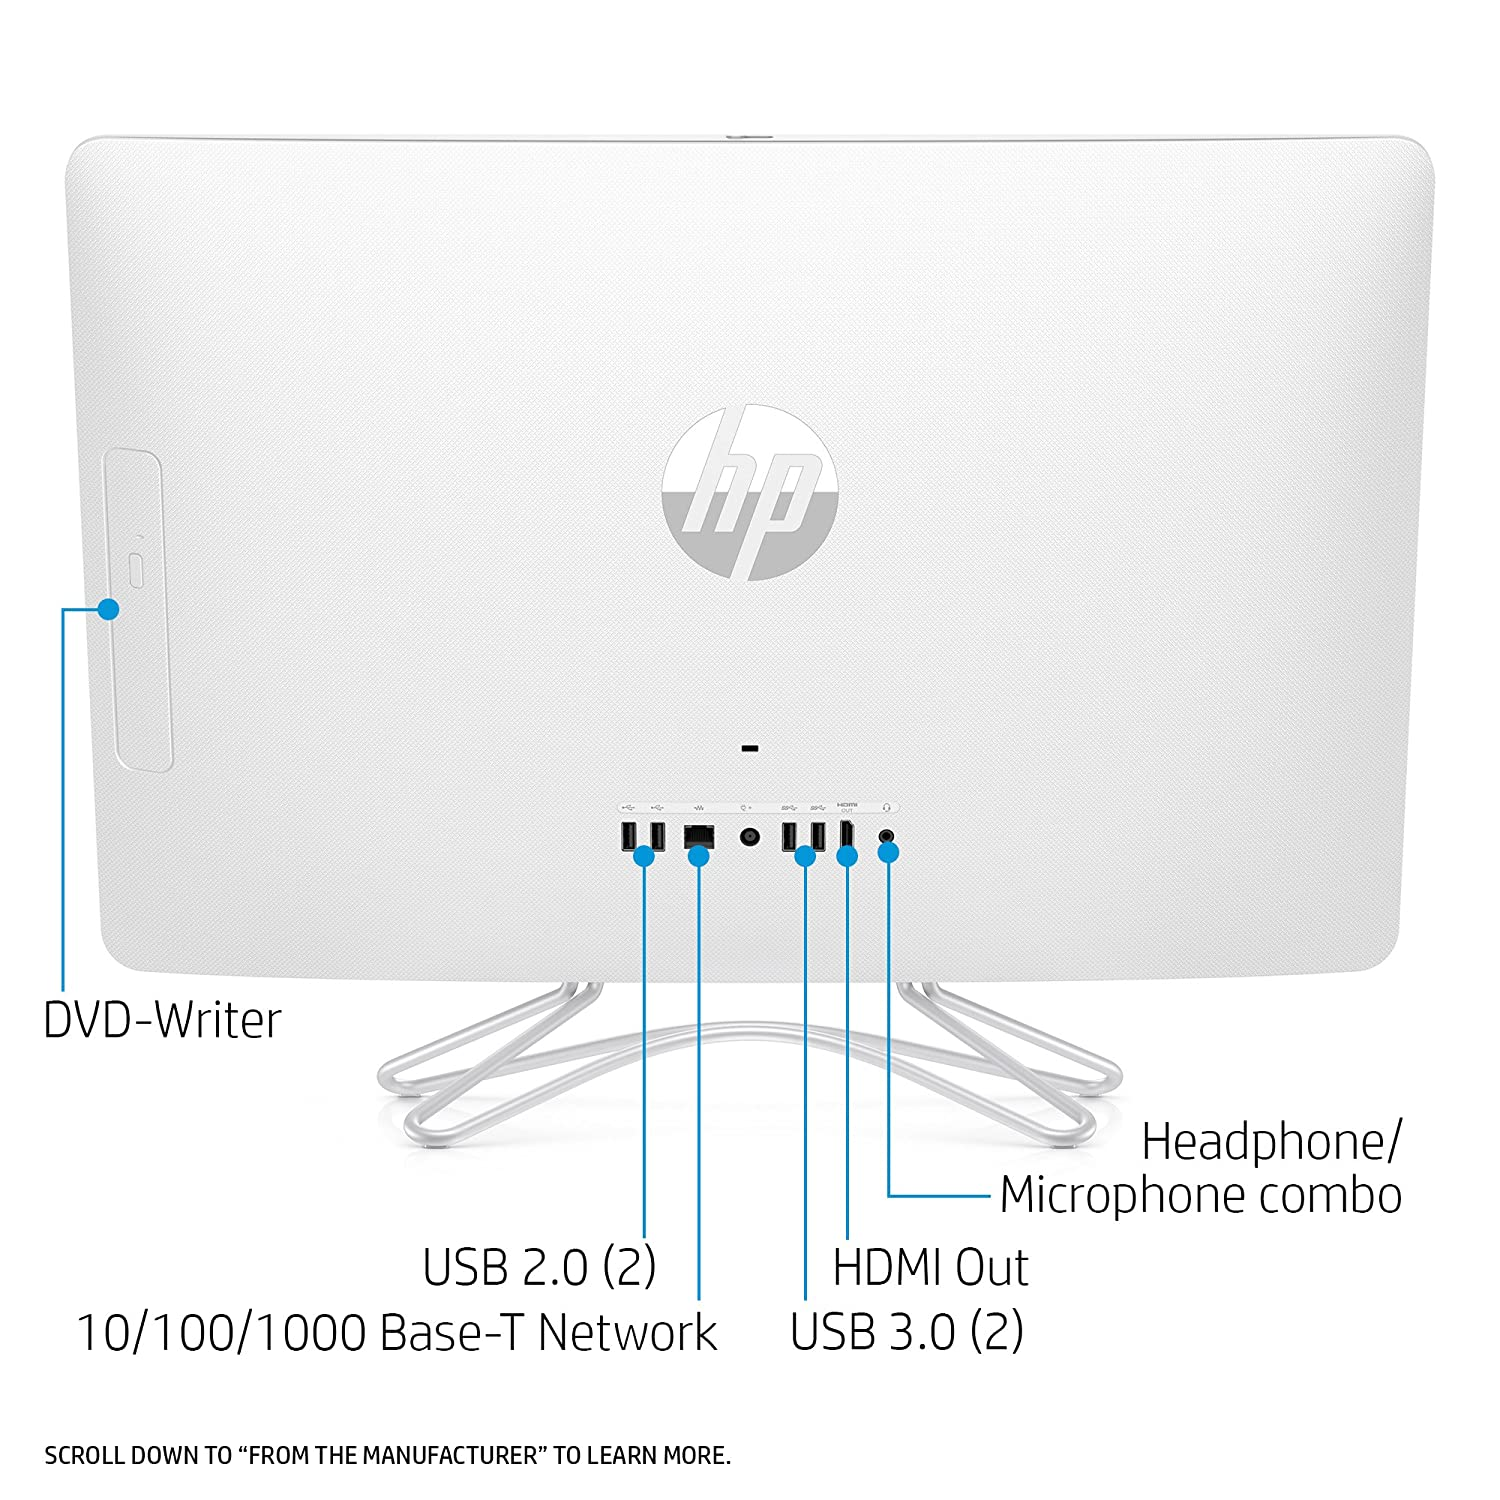 Hp Pavilion 24 Inch All In One Computer Intel Core I5 The Diagrams Below Identify Major Components Of Intelr Desktop 7200u Dual 8gb Ram 1tb Hard Drive Windows 10 E030 White Computers